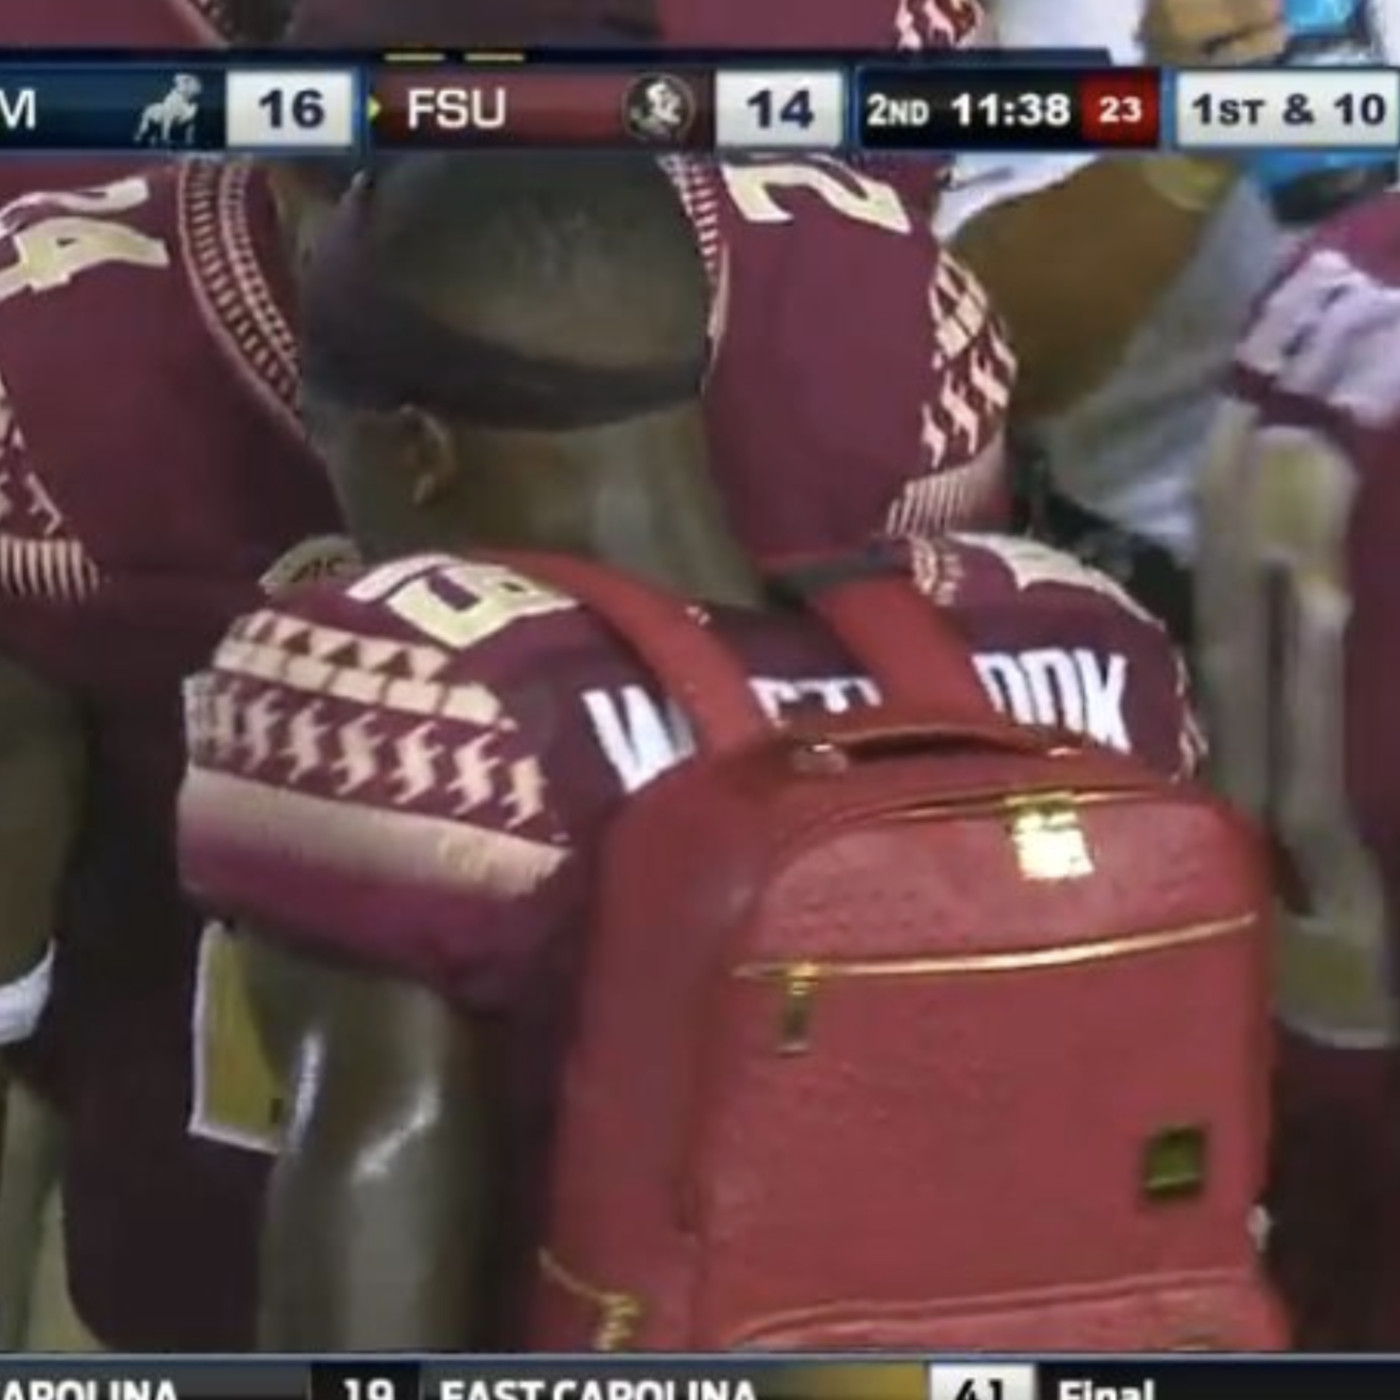 6dccd748993 FSU has a backpack for a sideline trophy